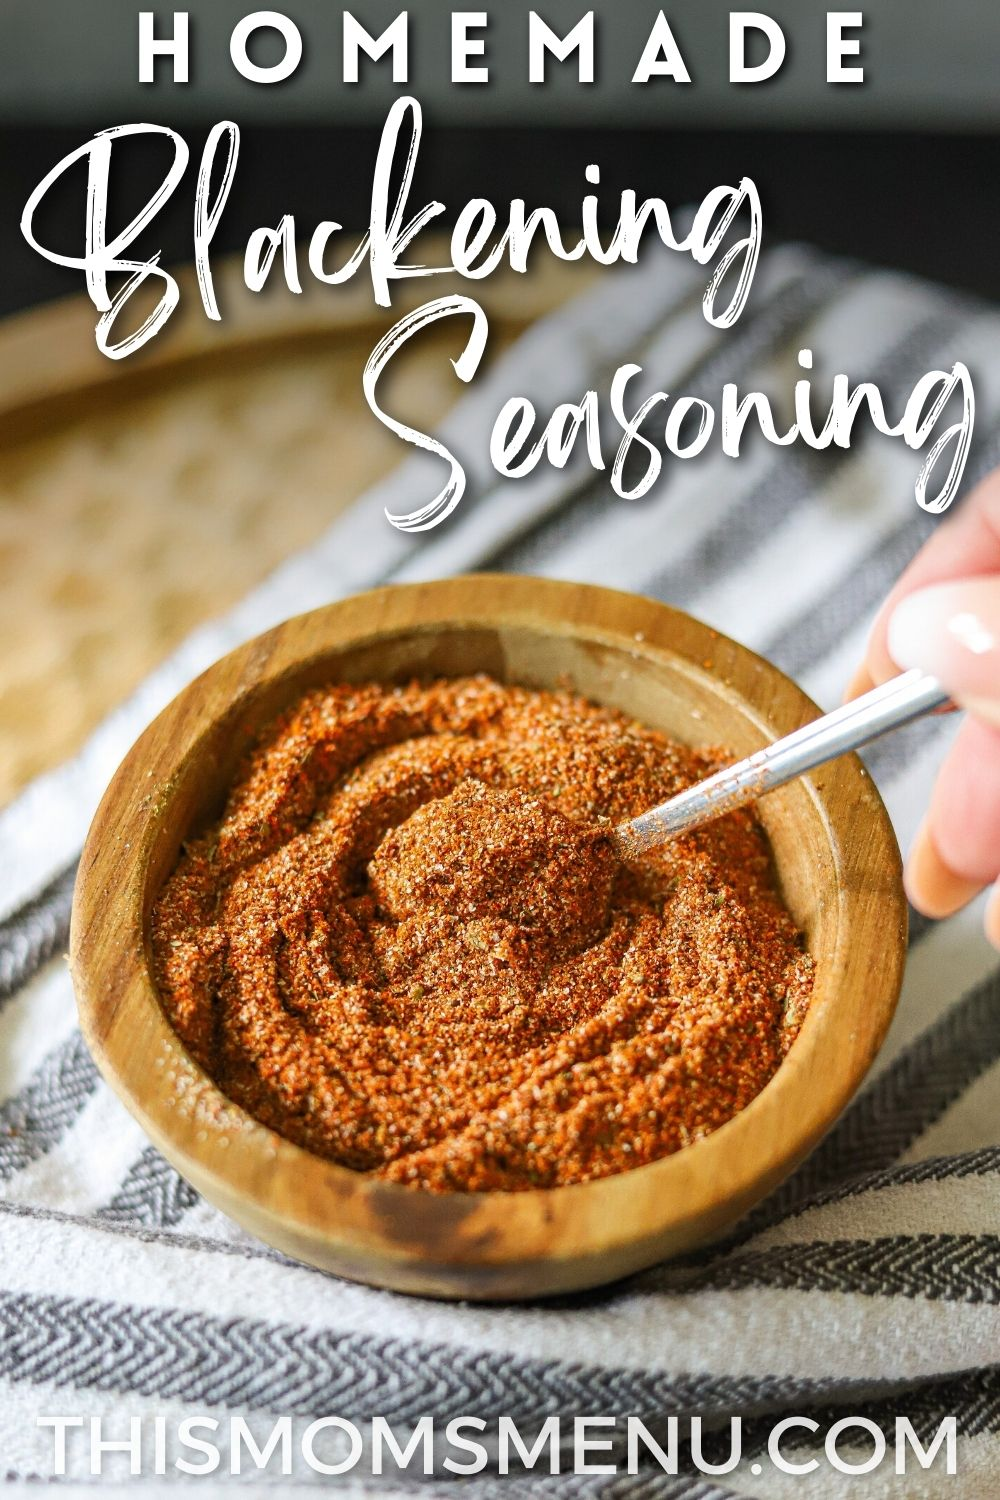 homemade seasoning blend in a wooden bowl with text overlay.